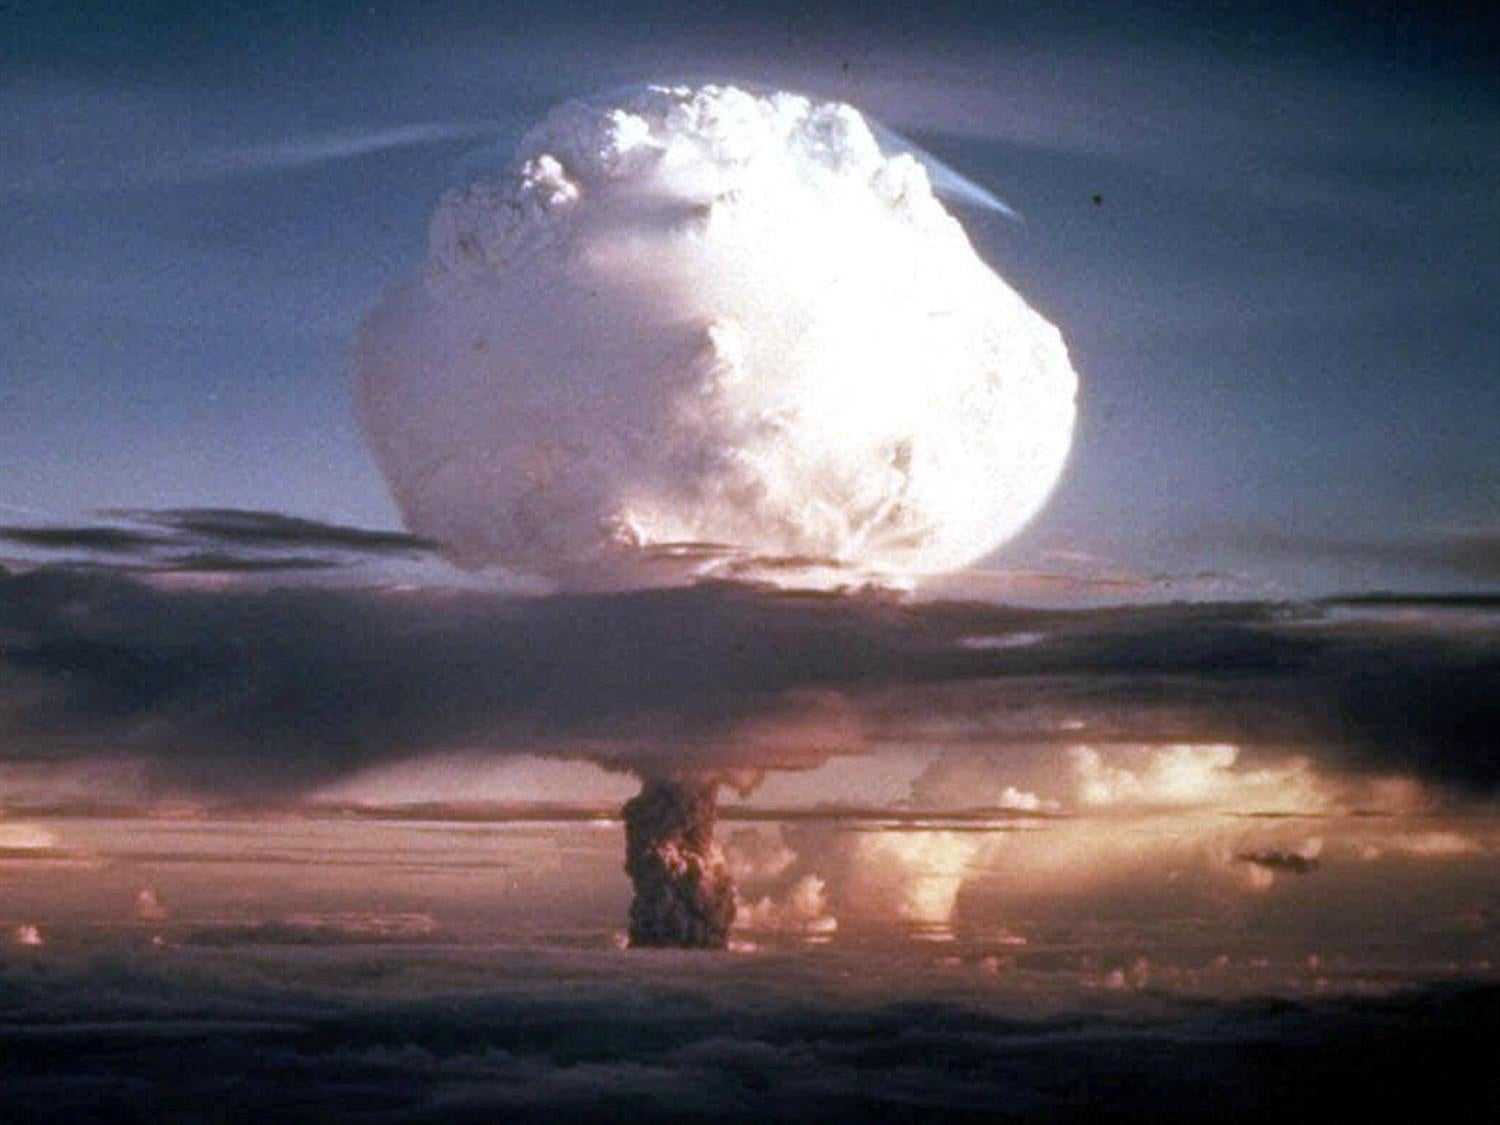 do nuclear weapons provide security This commitment -- which seems to leave open the possibility of a nuclear attack against states that provide weapons of mass destruction to terrorists -- seeks to question: how do us efforts to deter terrorist attacks through its nuclear policy affect international security as well as nonproliferation and disarmament efforts.